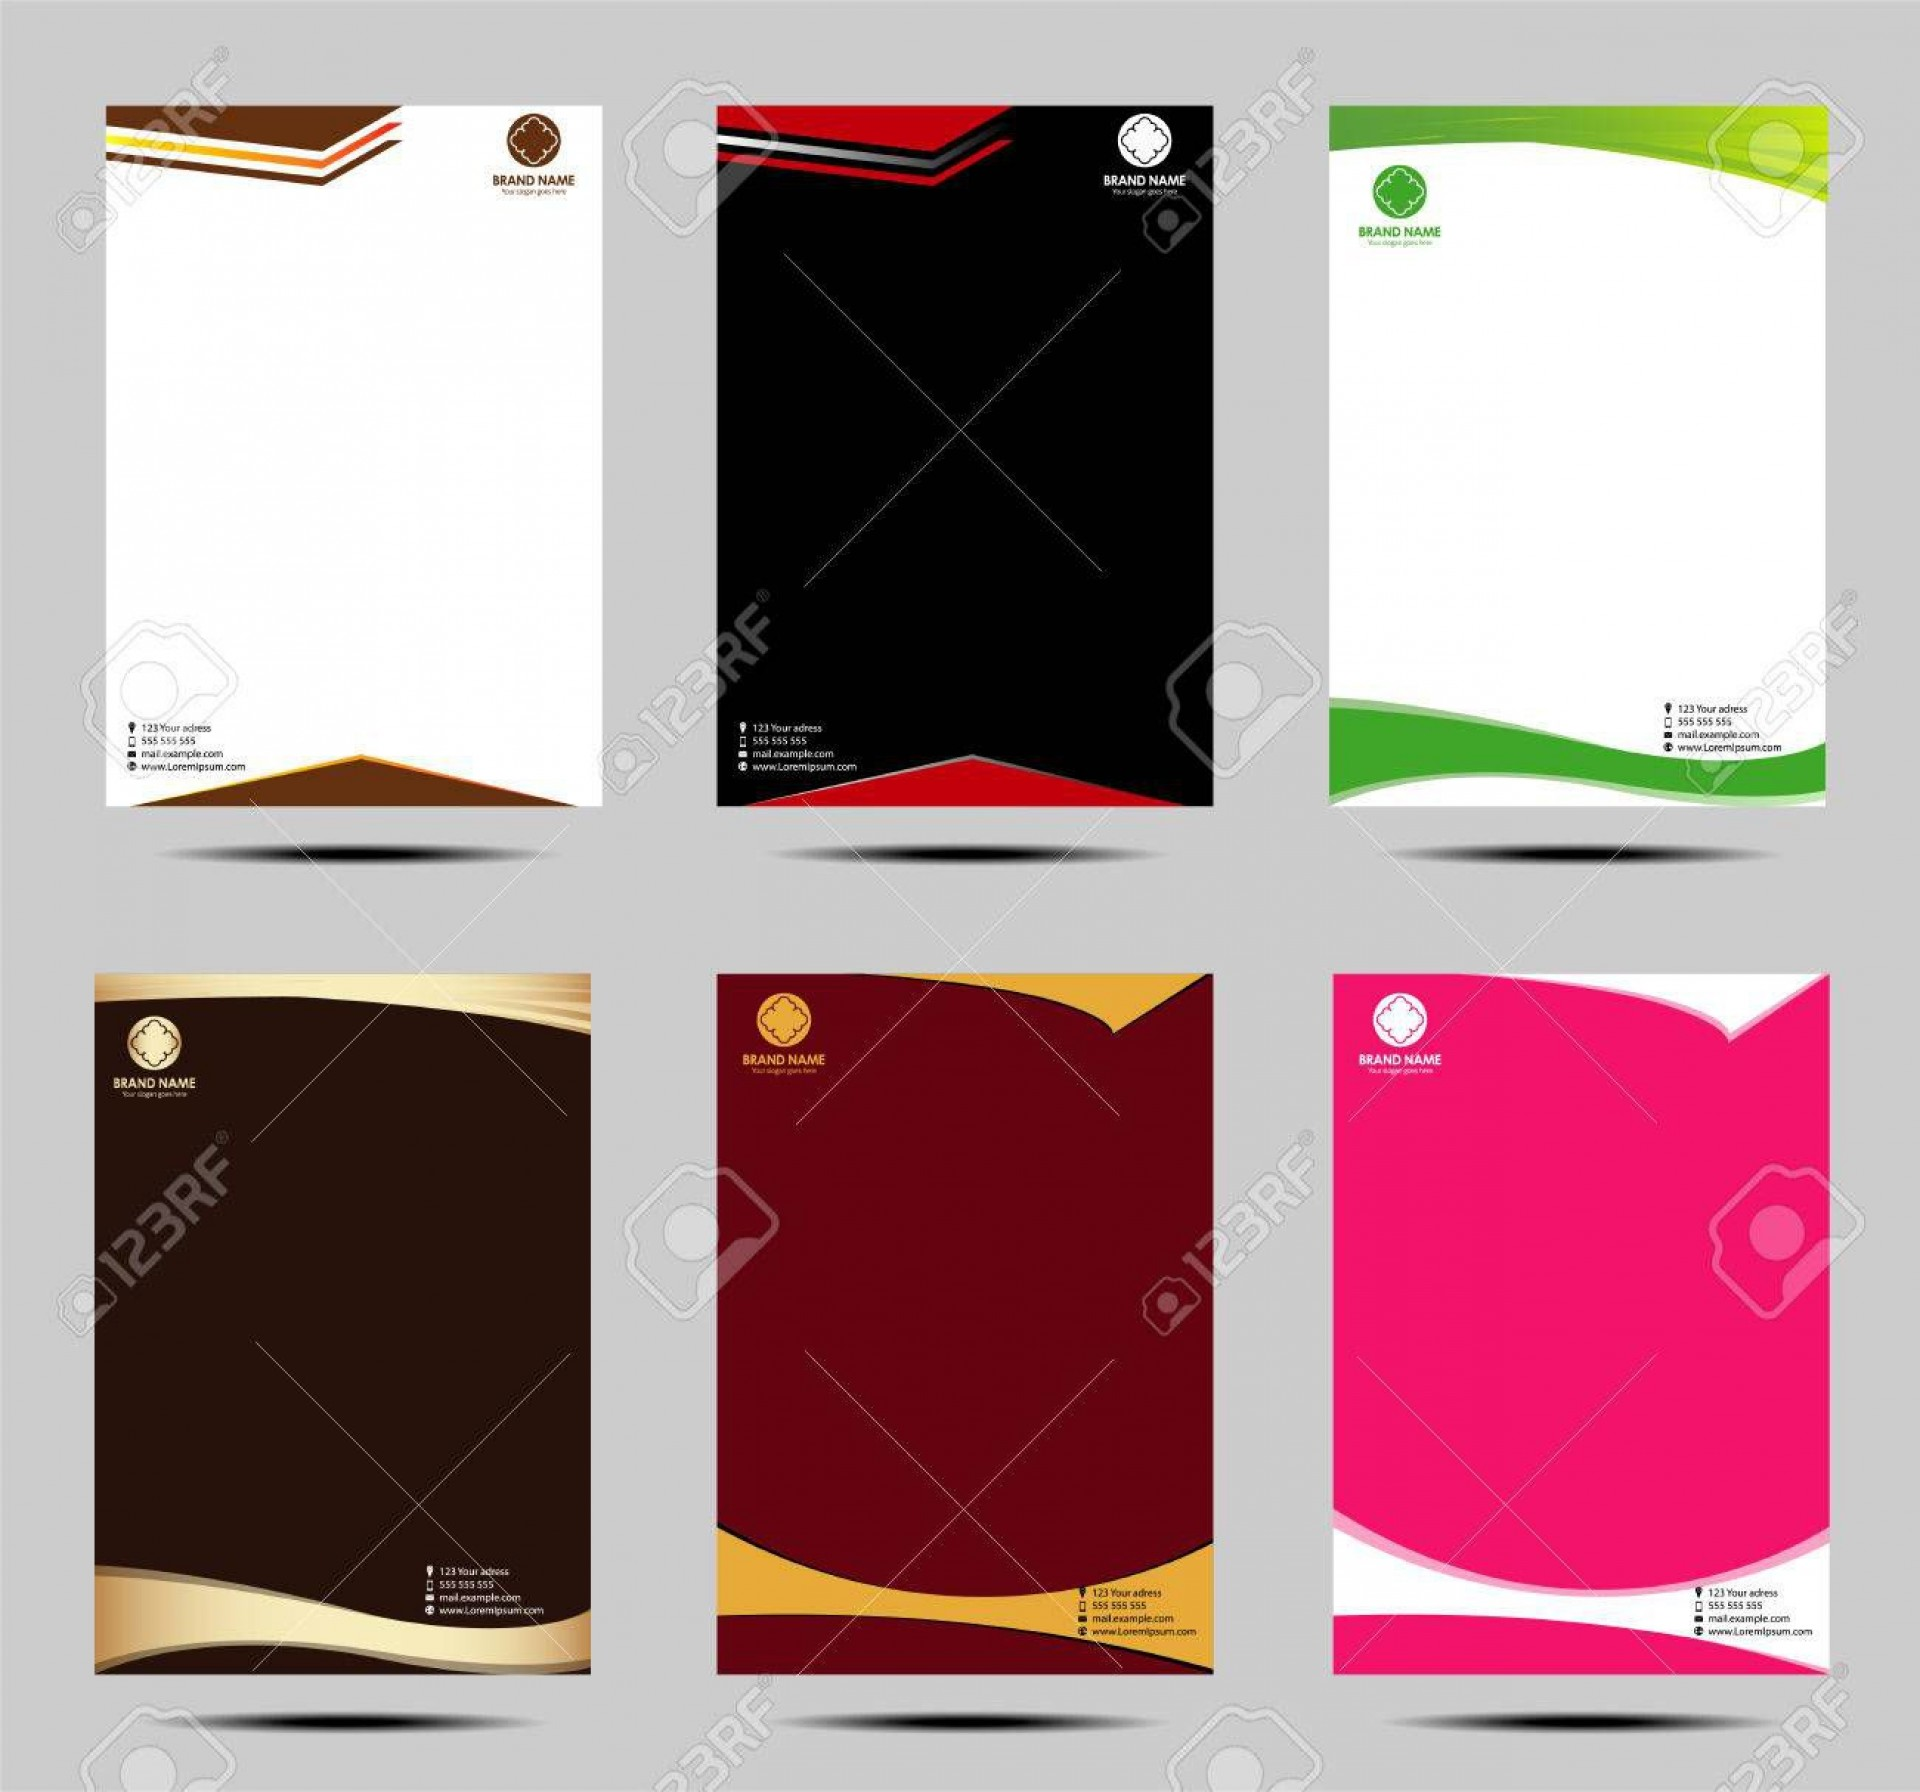 000 Astounding Letter Pad Design Template High Definition  Letterhead Download Ai Free In Word1920